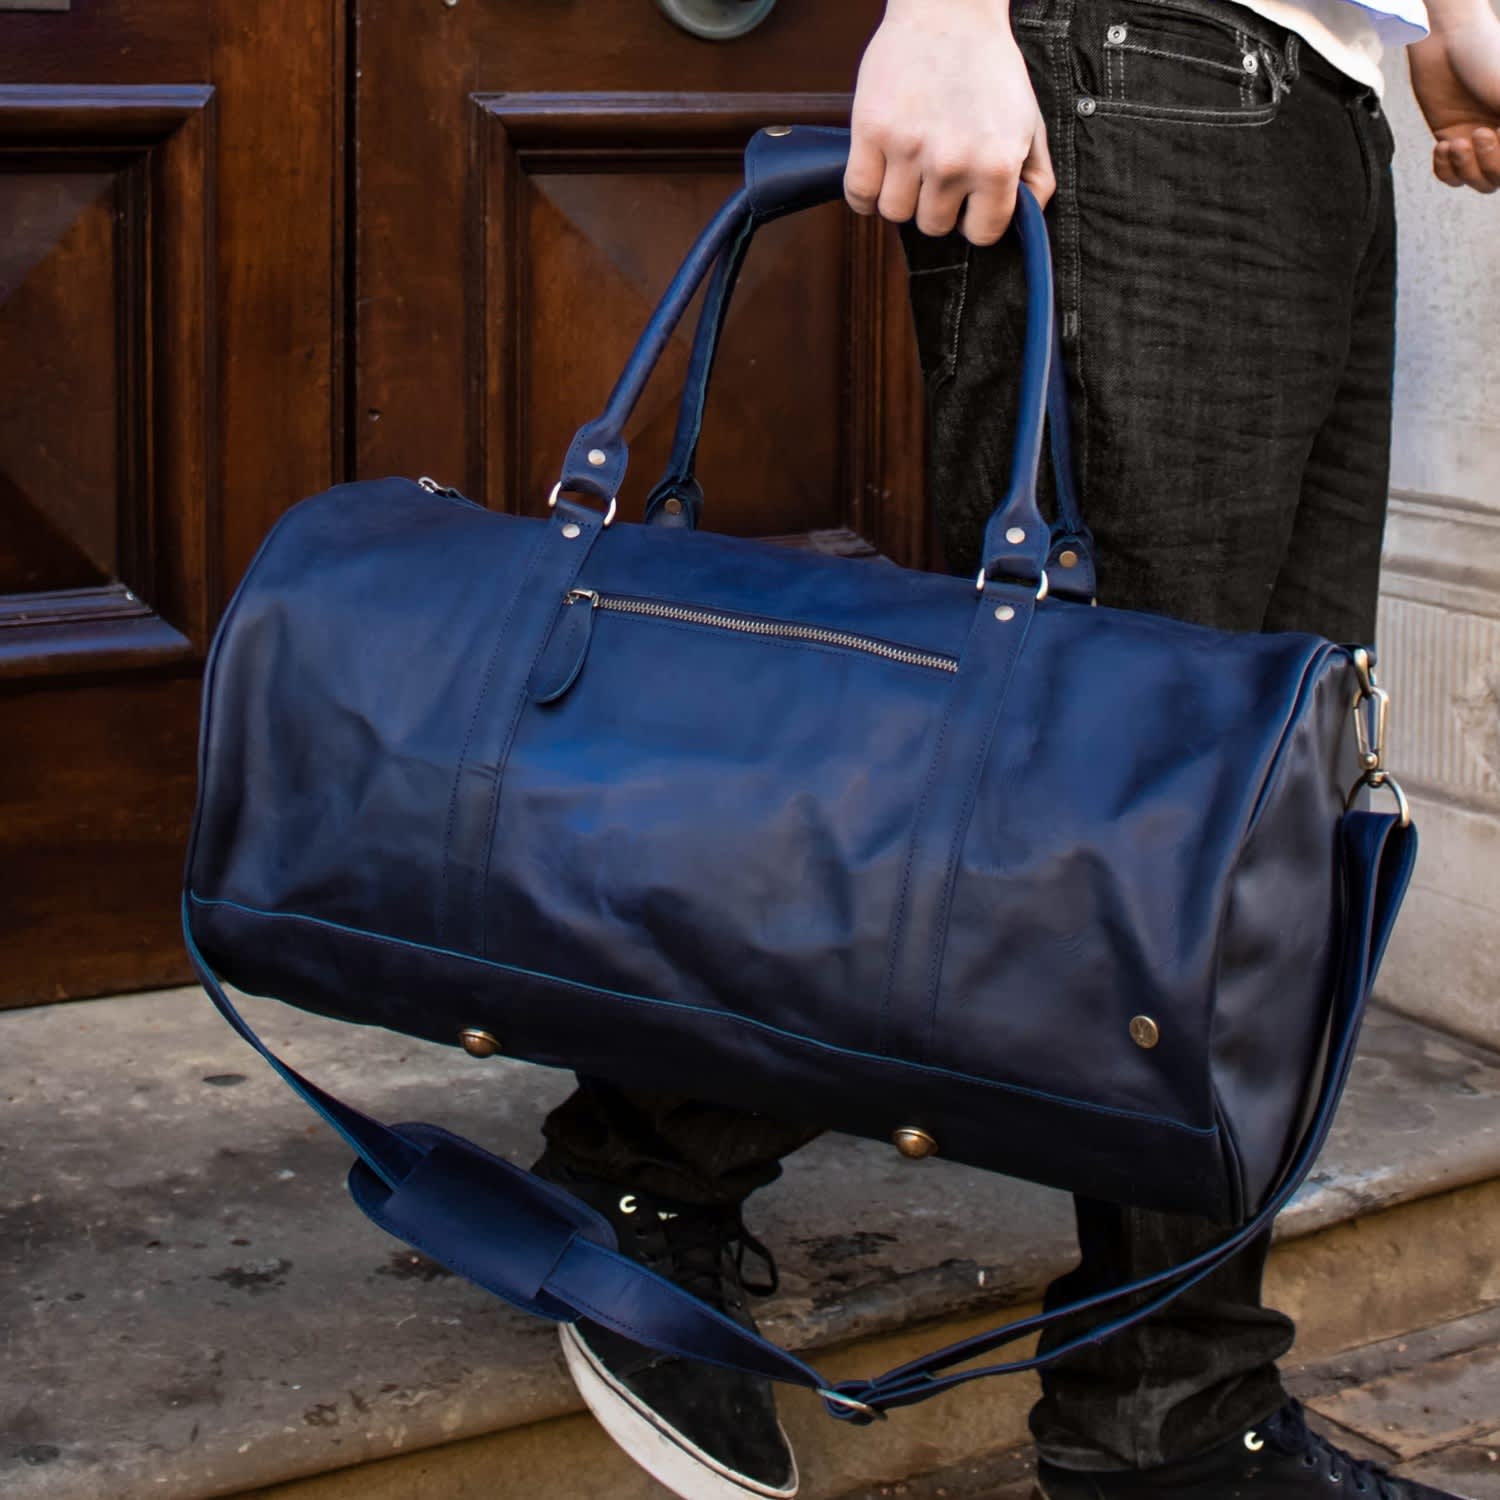 Leather Weekend Classic Duffle Bag In Navy image 8ca5d06b37331